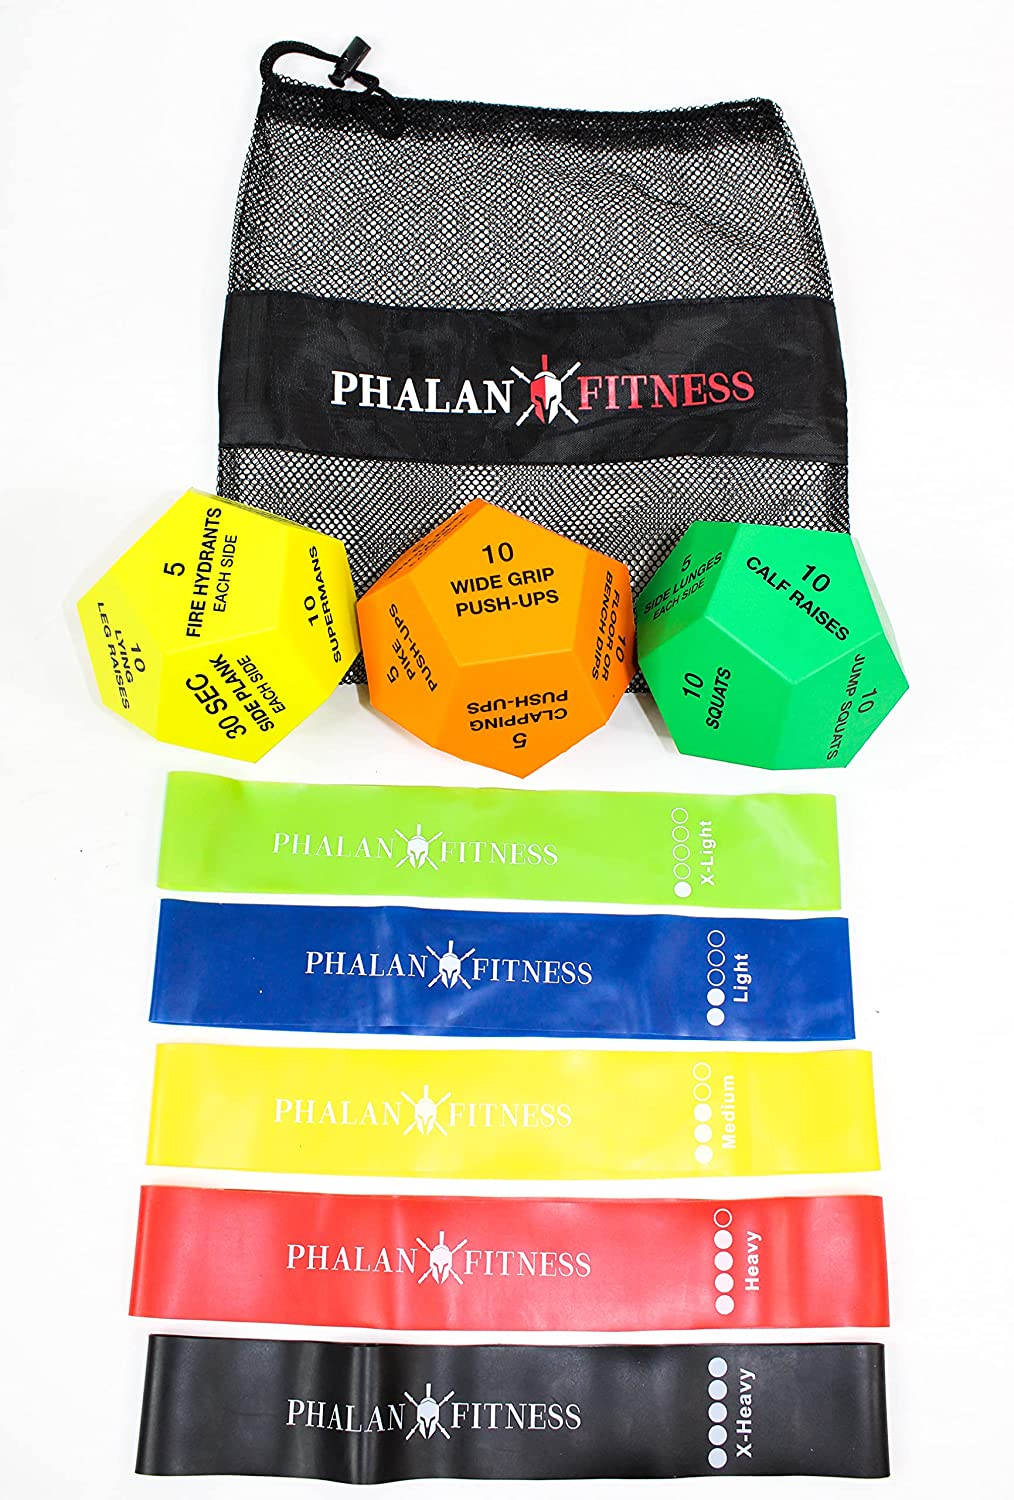 Dealing full price reduction Phalanx Fitness Exercise Dice Selling and selling with for Bands- Excellent